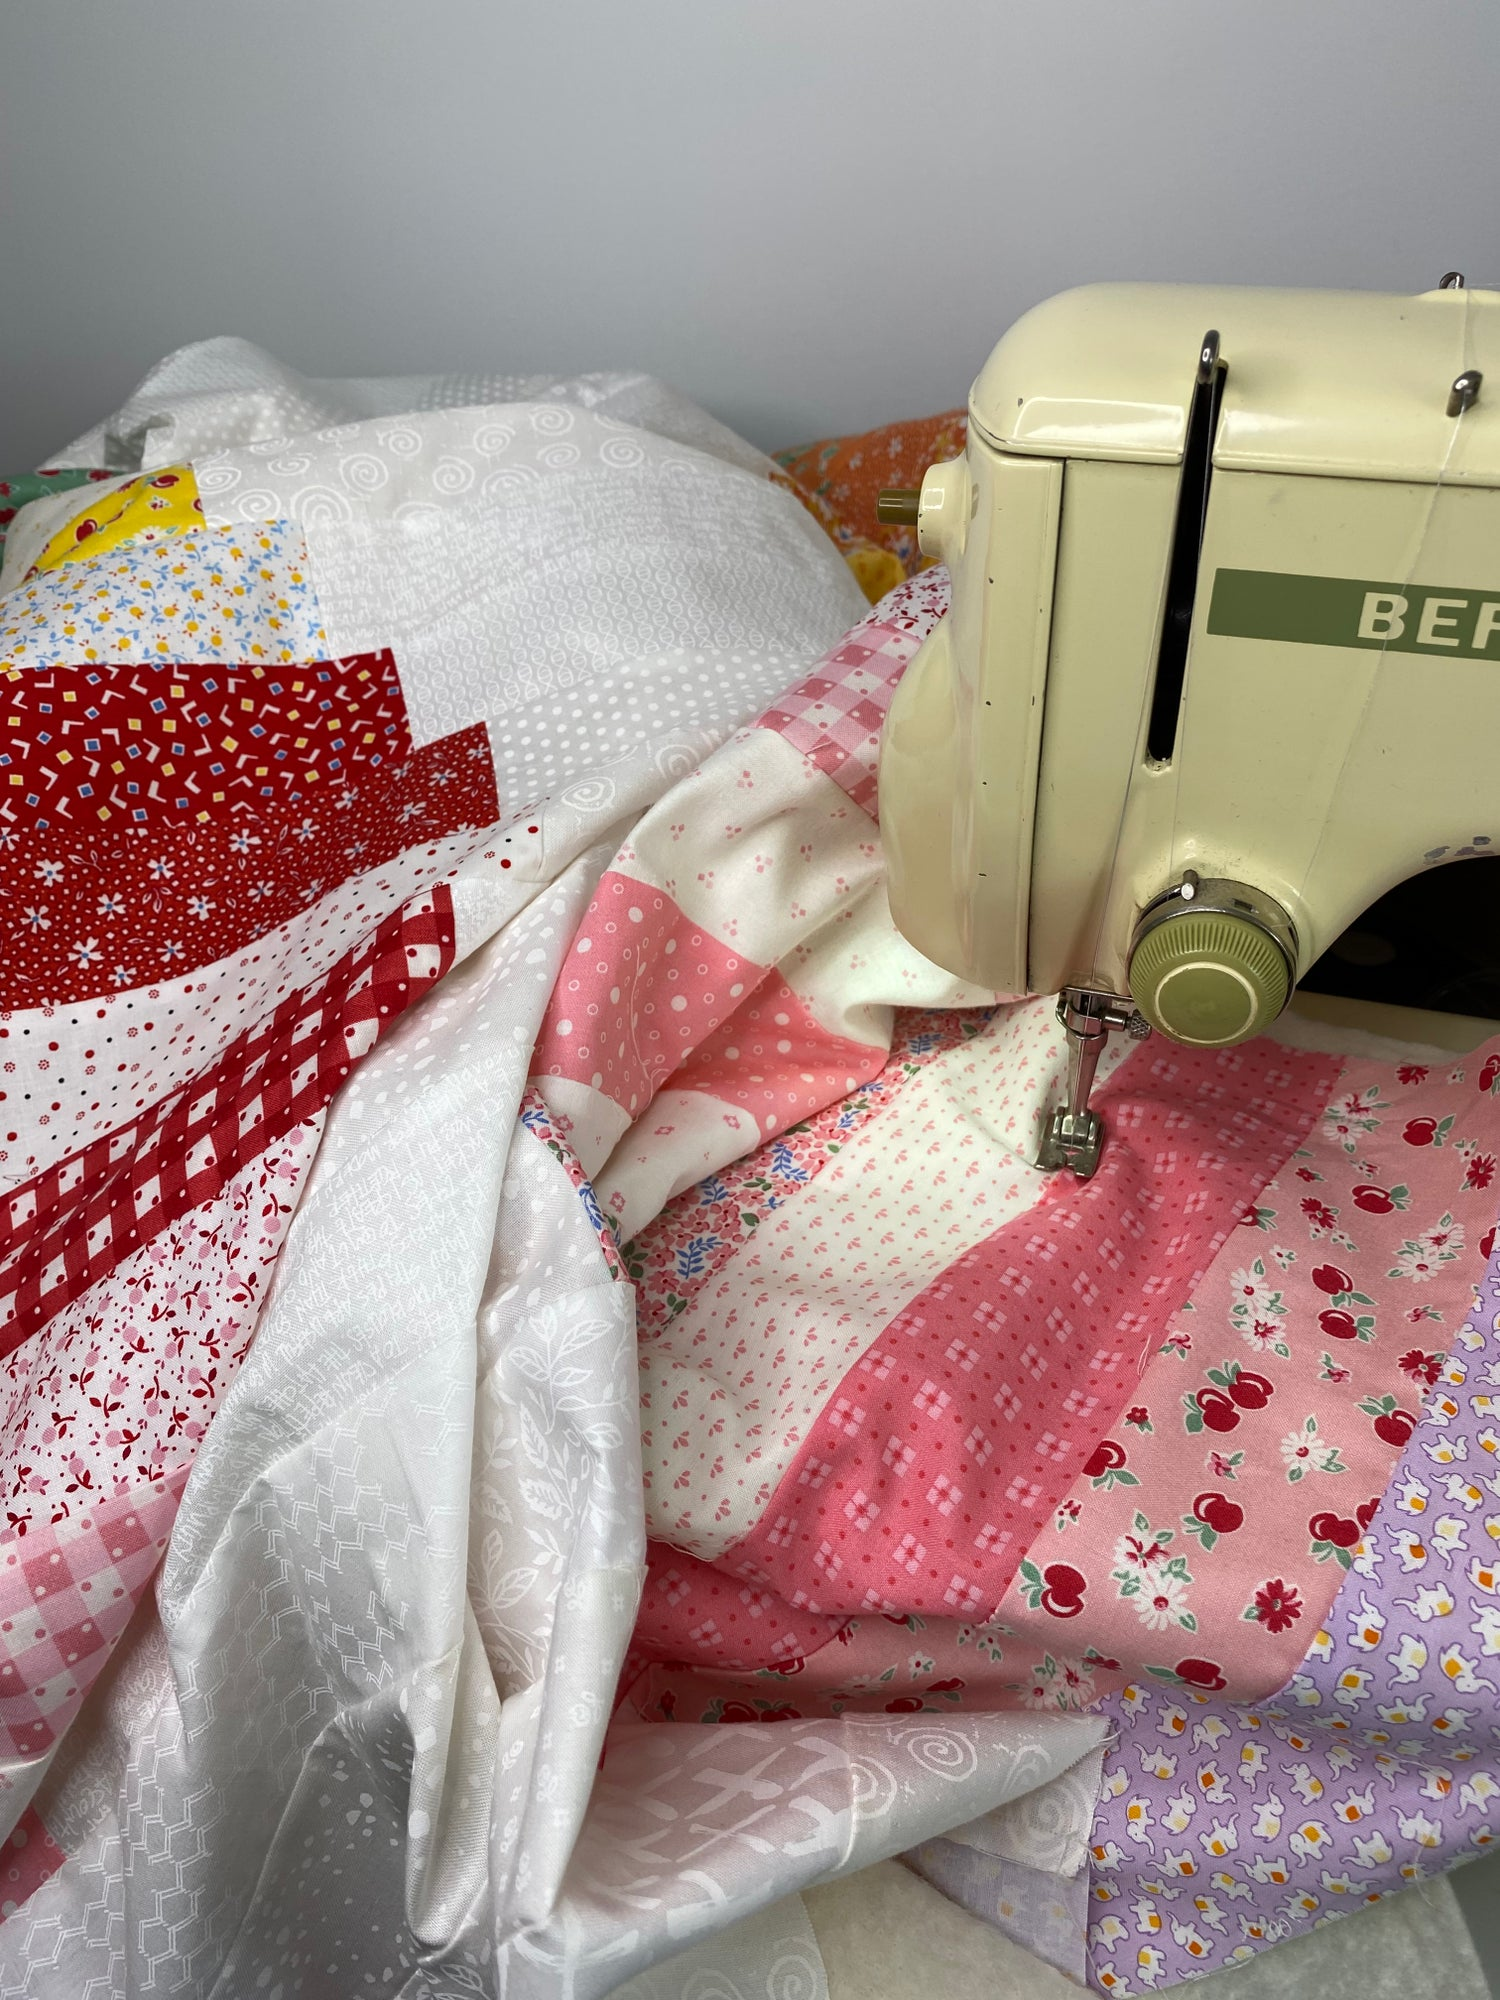 An antique Bernina Sewing Machine in the process of quilting a modern patchwork quilt top.